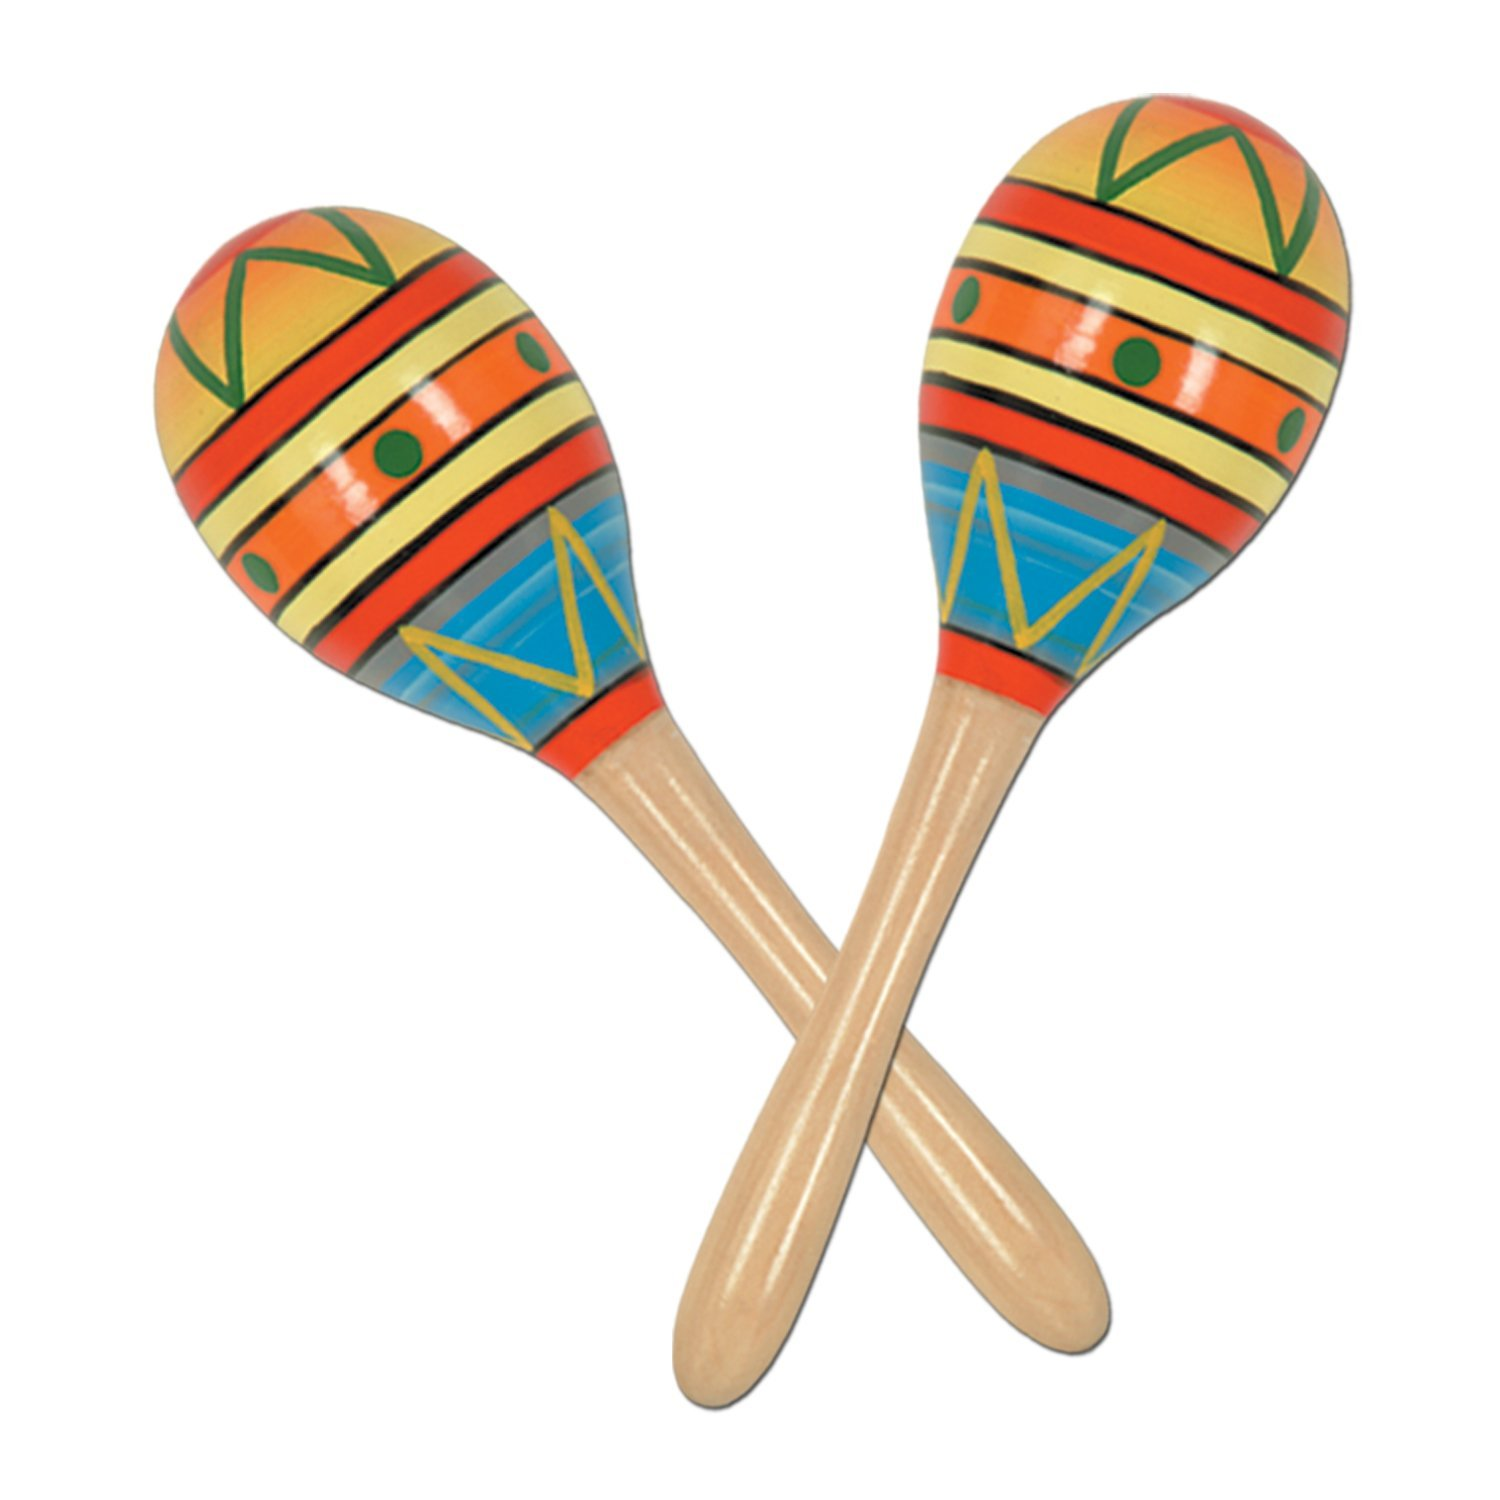 fiesta fun party maracas party accessory 1 count 2 pkg new